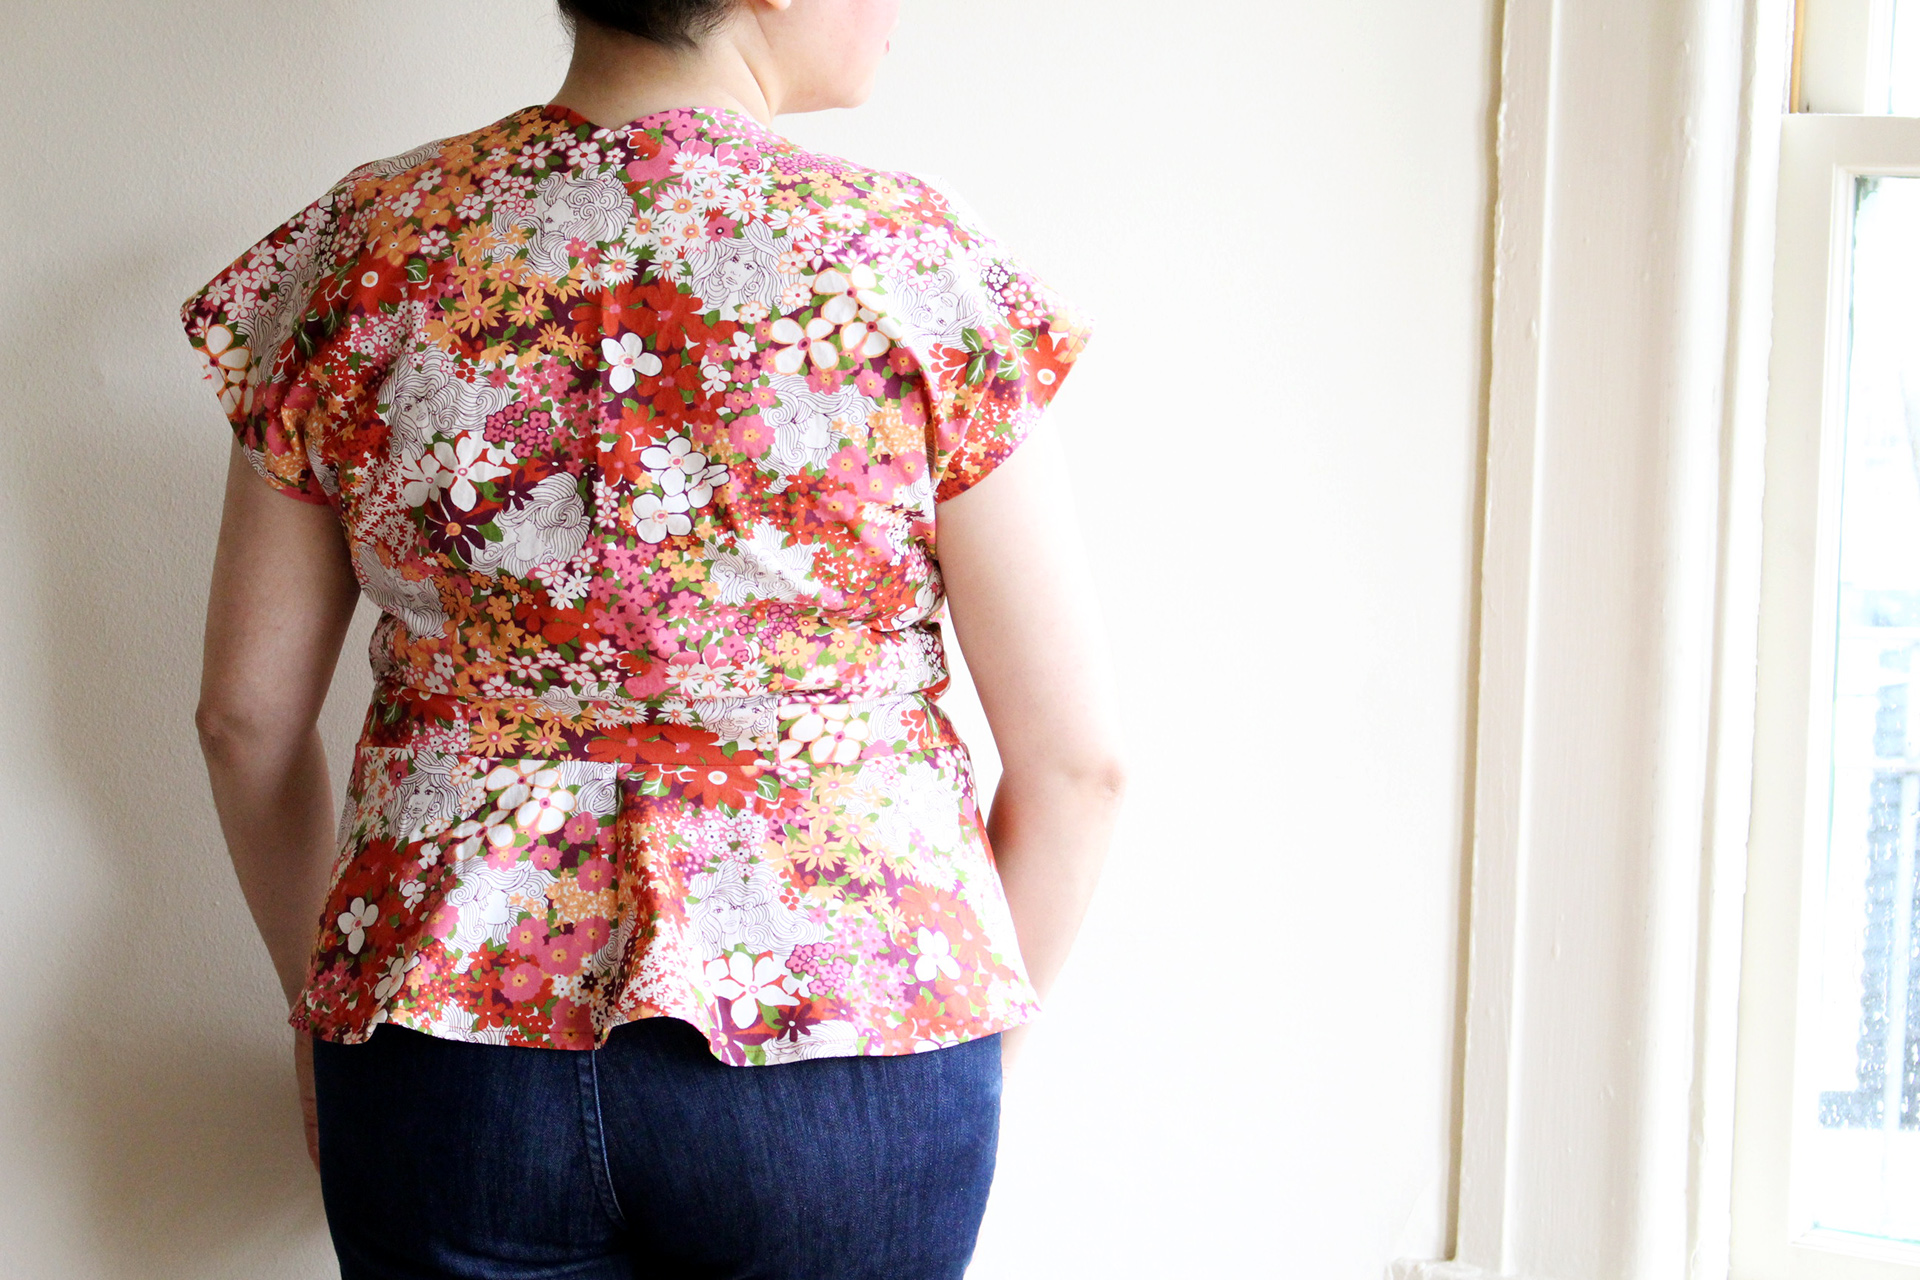 Vintage Simplicity Peplum 1460, back view of completed peplum | @vintageontap